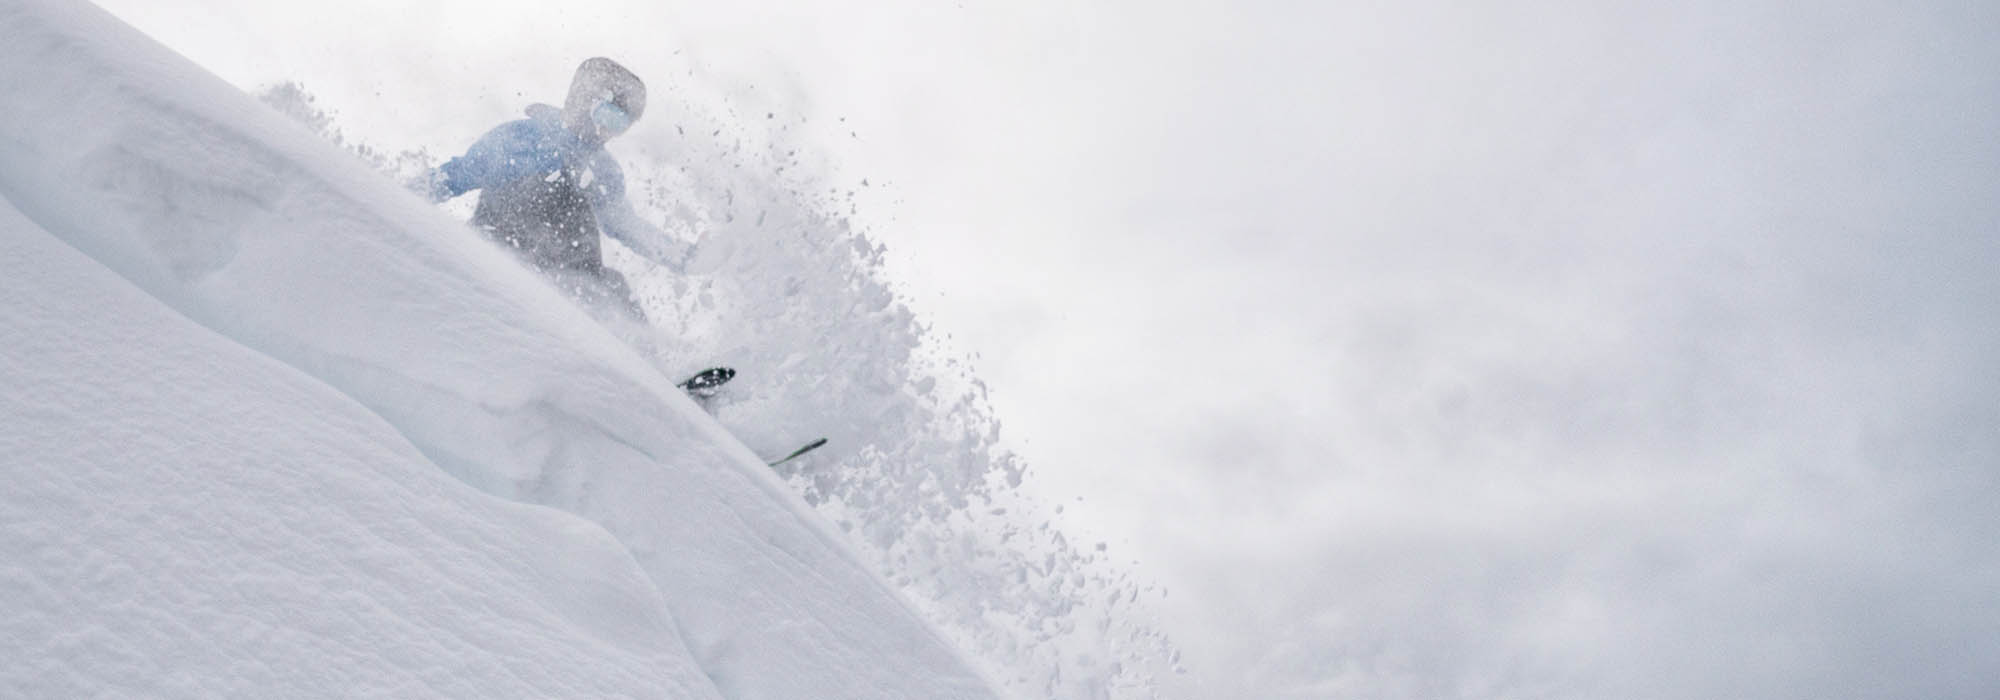 Cole Richardson skiing Lipalian Chutes at Lake Louise Ski Resort.